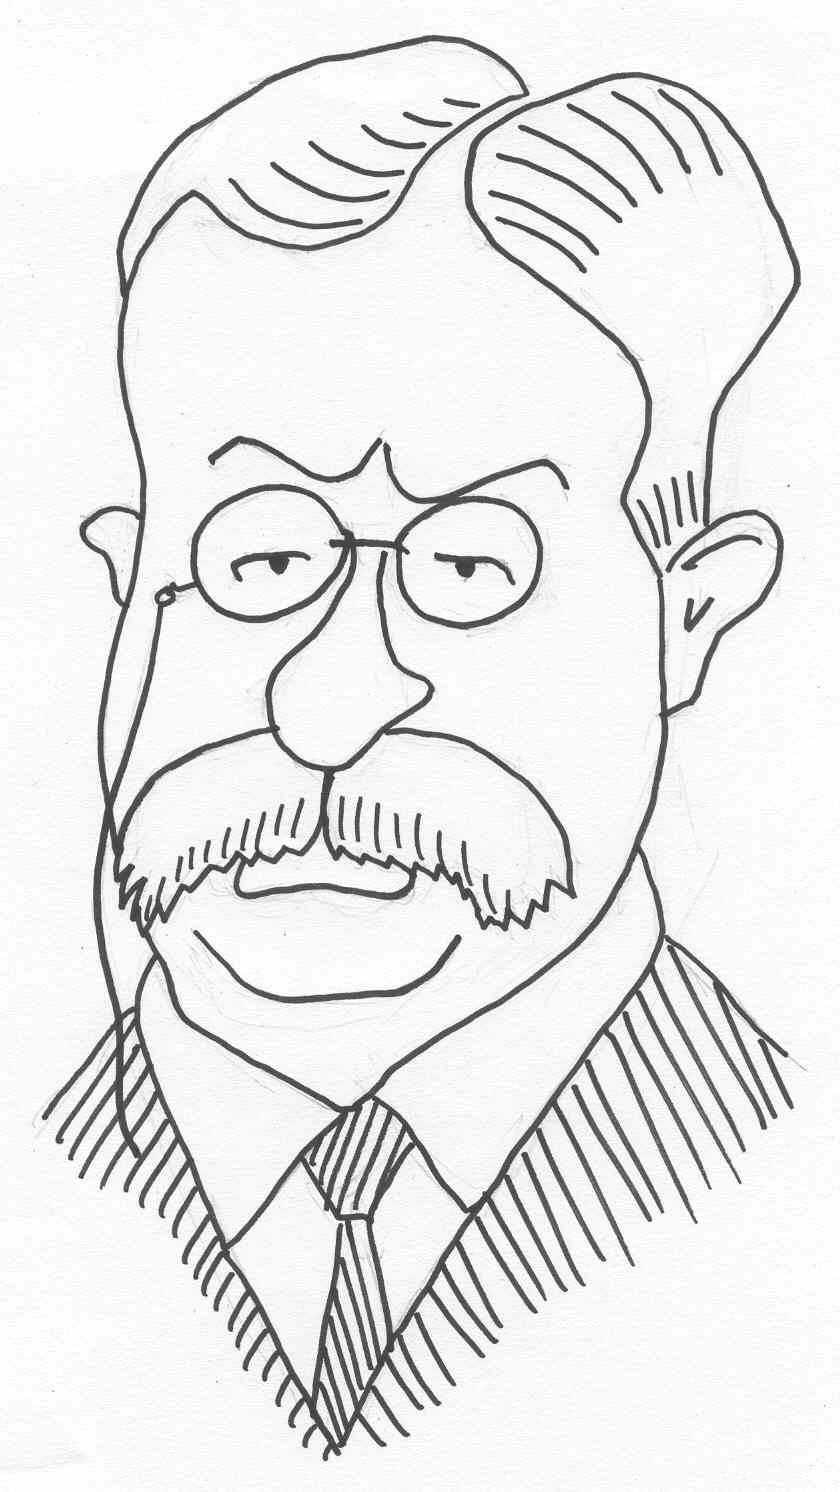 roosevelt caricature thesis statement theodore roosevelt america39s best roosevelt caricature